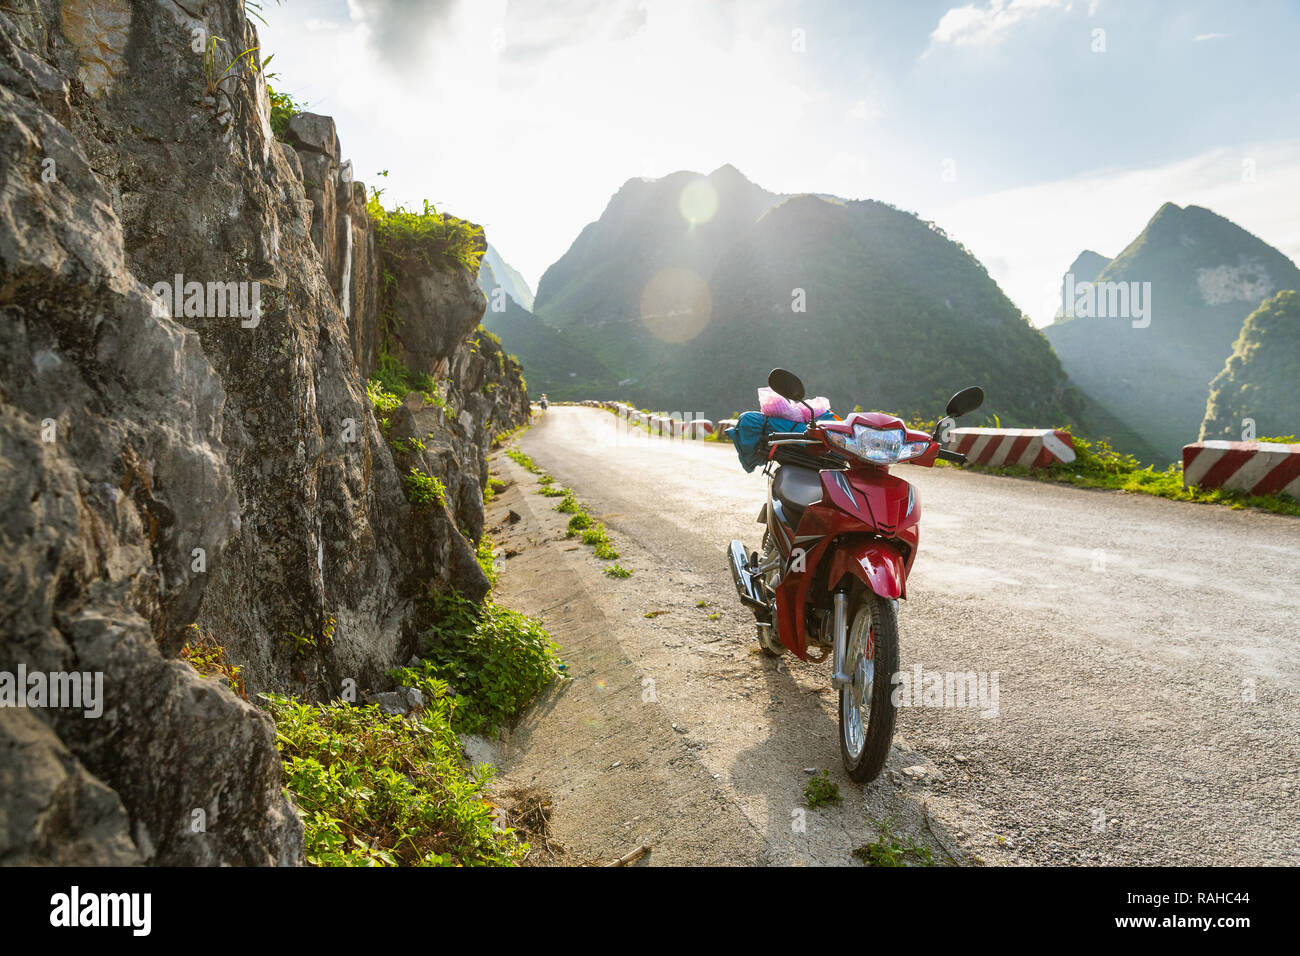 Red motorbike parked on the side of the road, off the Ha Giang Loop, Ha Giang Province, Vietnam, Asia Stock Photo